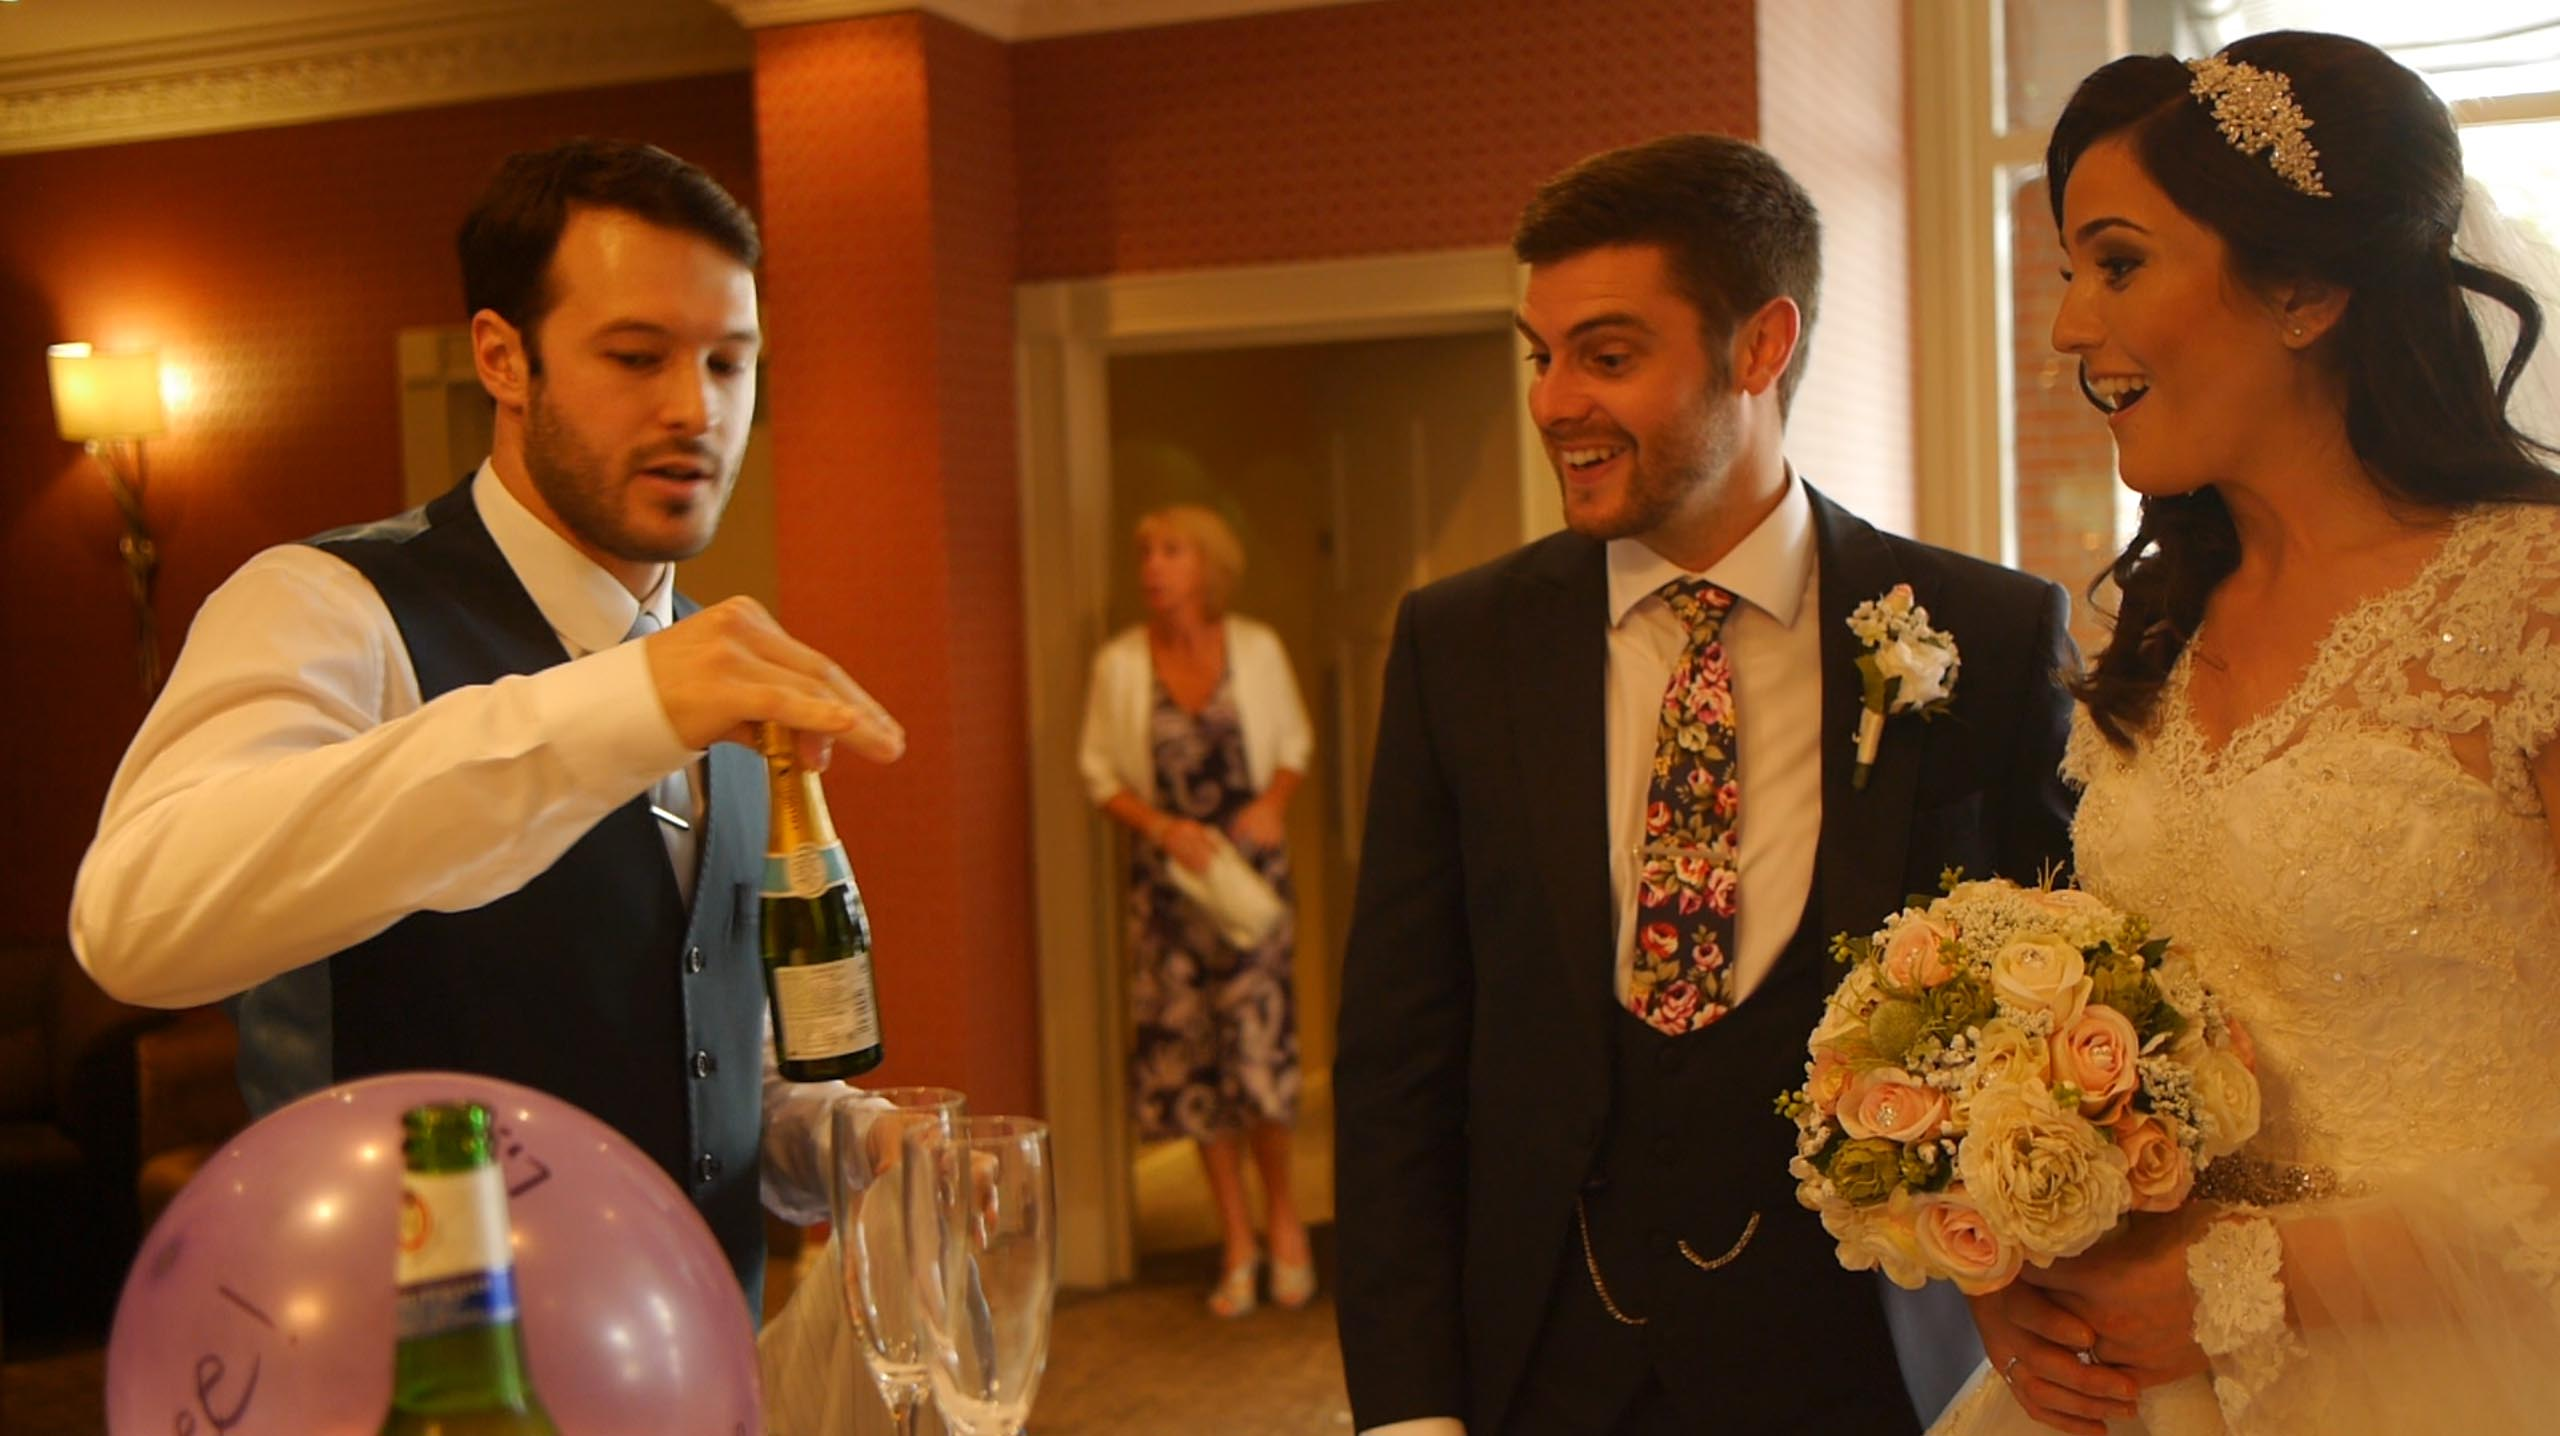 close up wedding magician shocks bride and groom